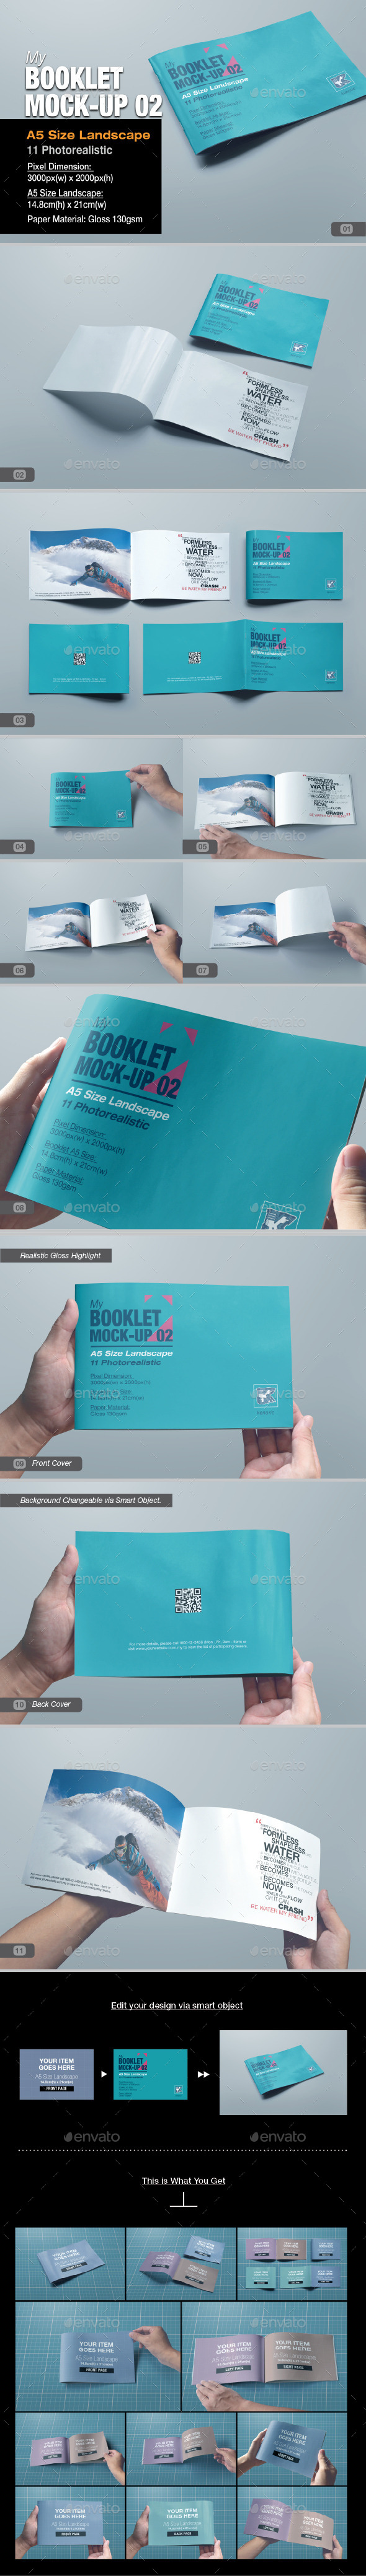 GraphicRiver myBooklet Mock-up 02 10114545